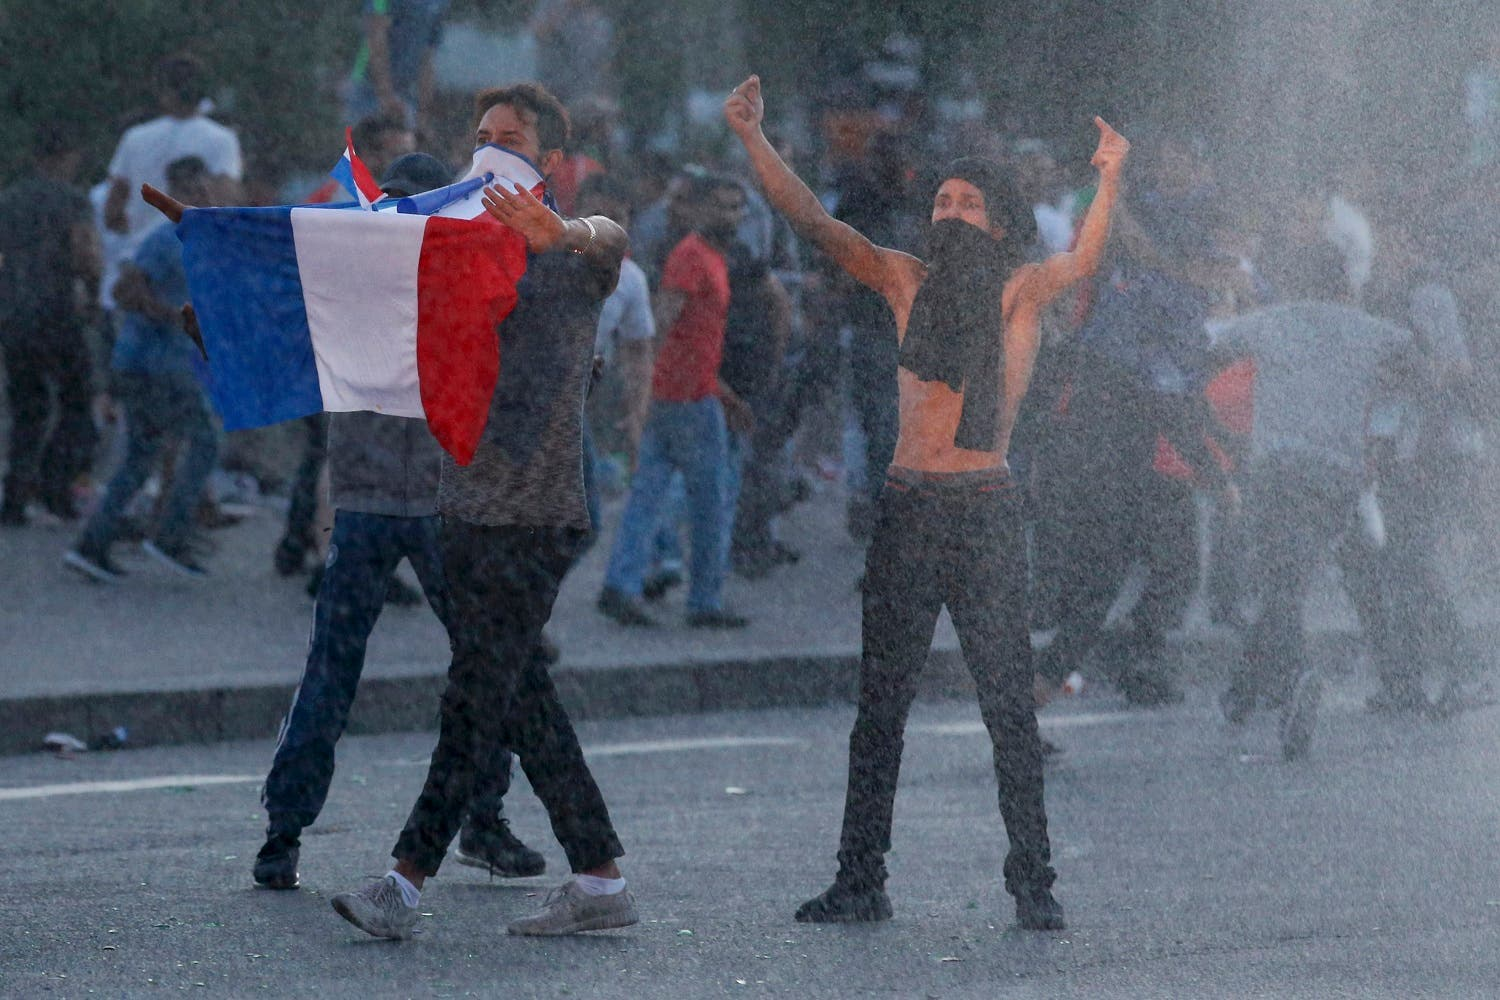 French supporters protest France's loss in the Euro 2016 final match